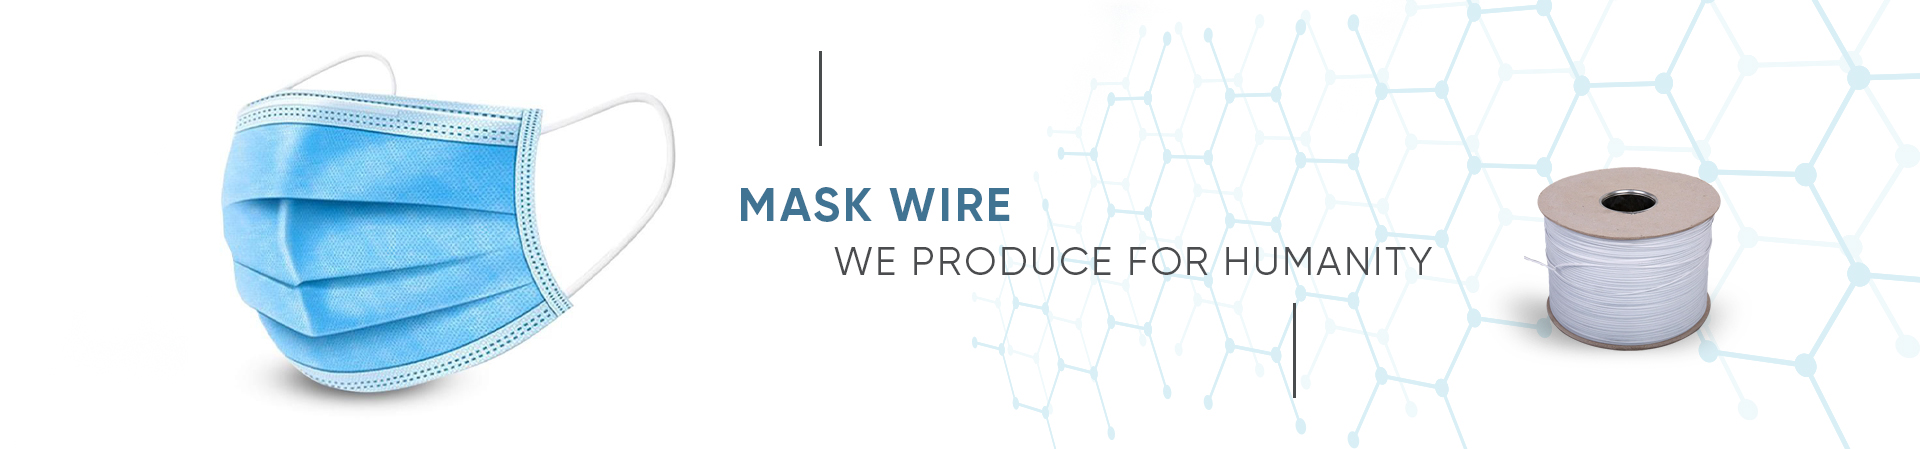 mask wire